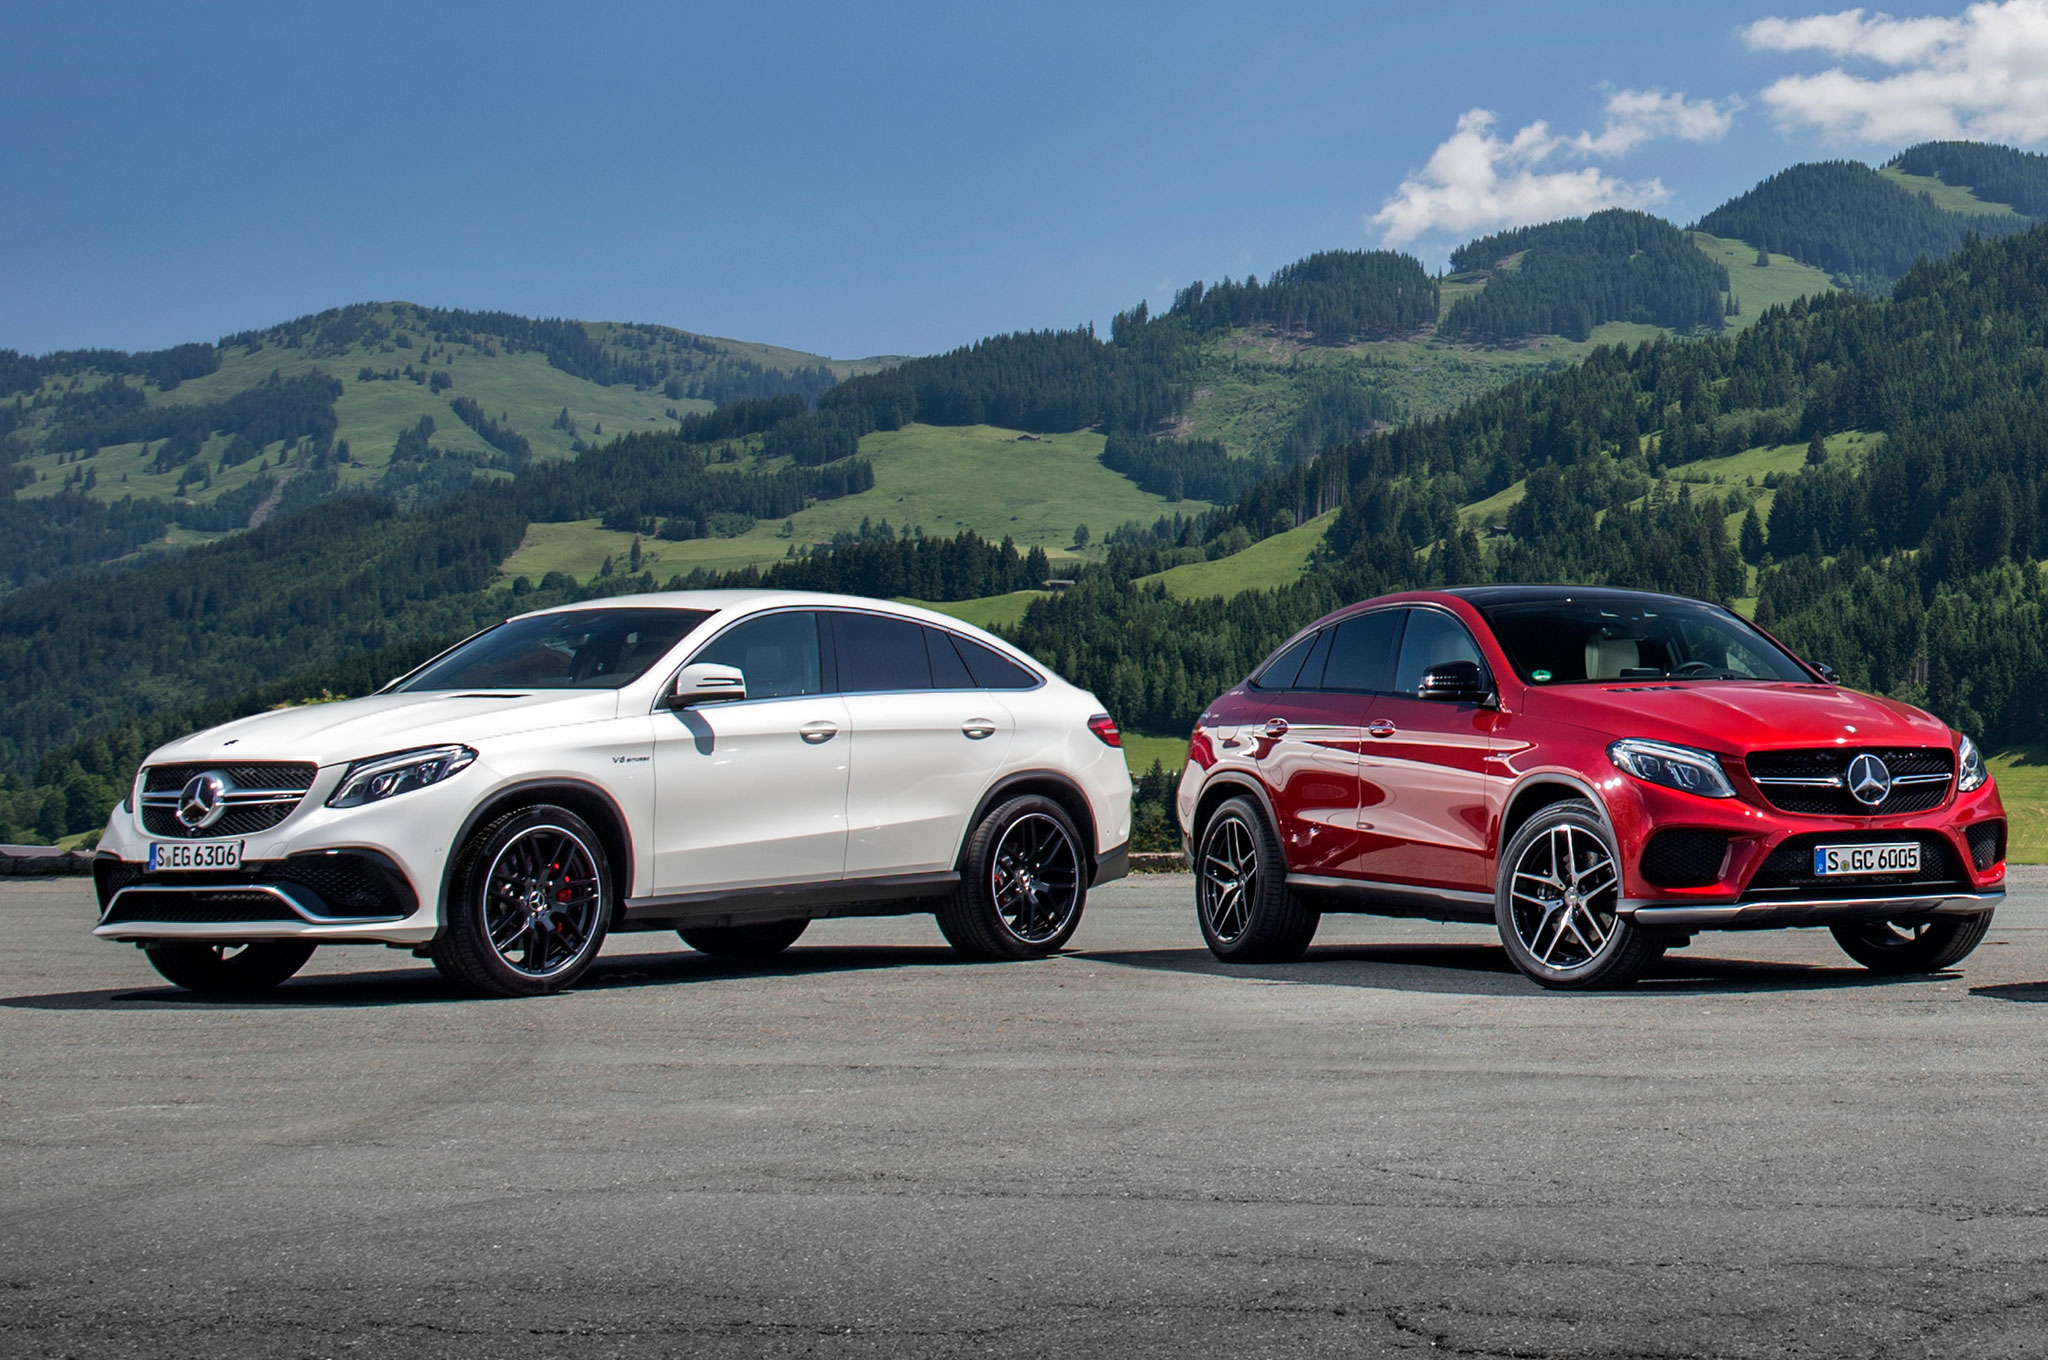 http://st.automobilemag.com/uploads/sites/11/2015/06/2016-Mercedes-Benz-GLE-Coupe.jpg